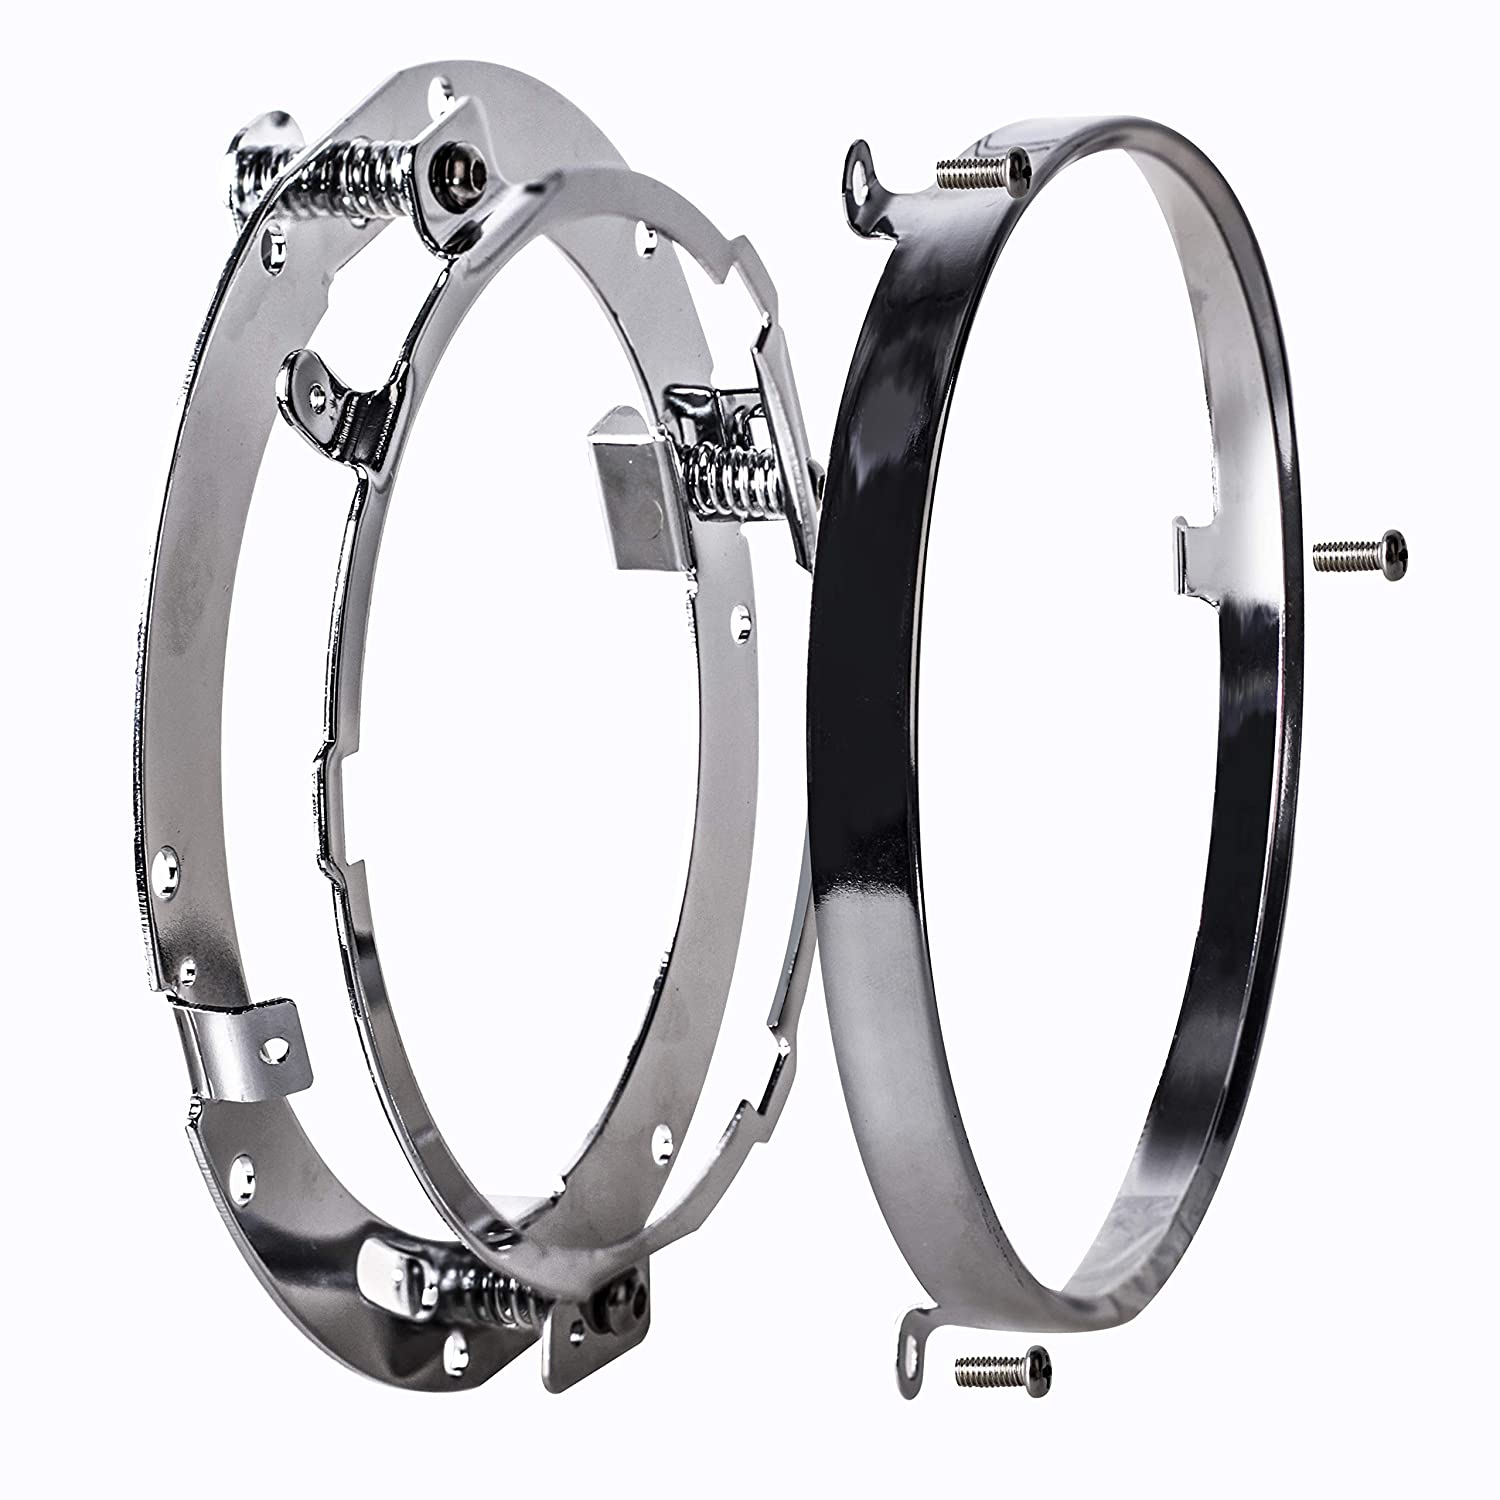 NTHREEAUTO 7 Chrome Motorcycle Headlight Mounting Bracket Ring LED Round Headlamp Bezel Trim Compatible with Harley Davidson Road King Touring Softail FLD Street Glide